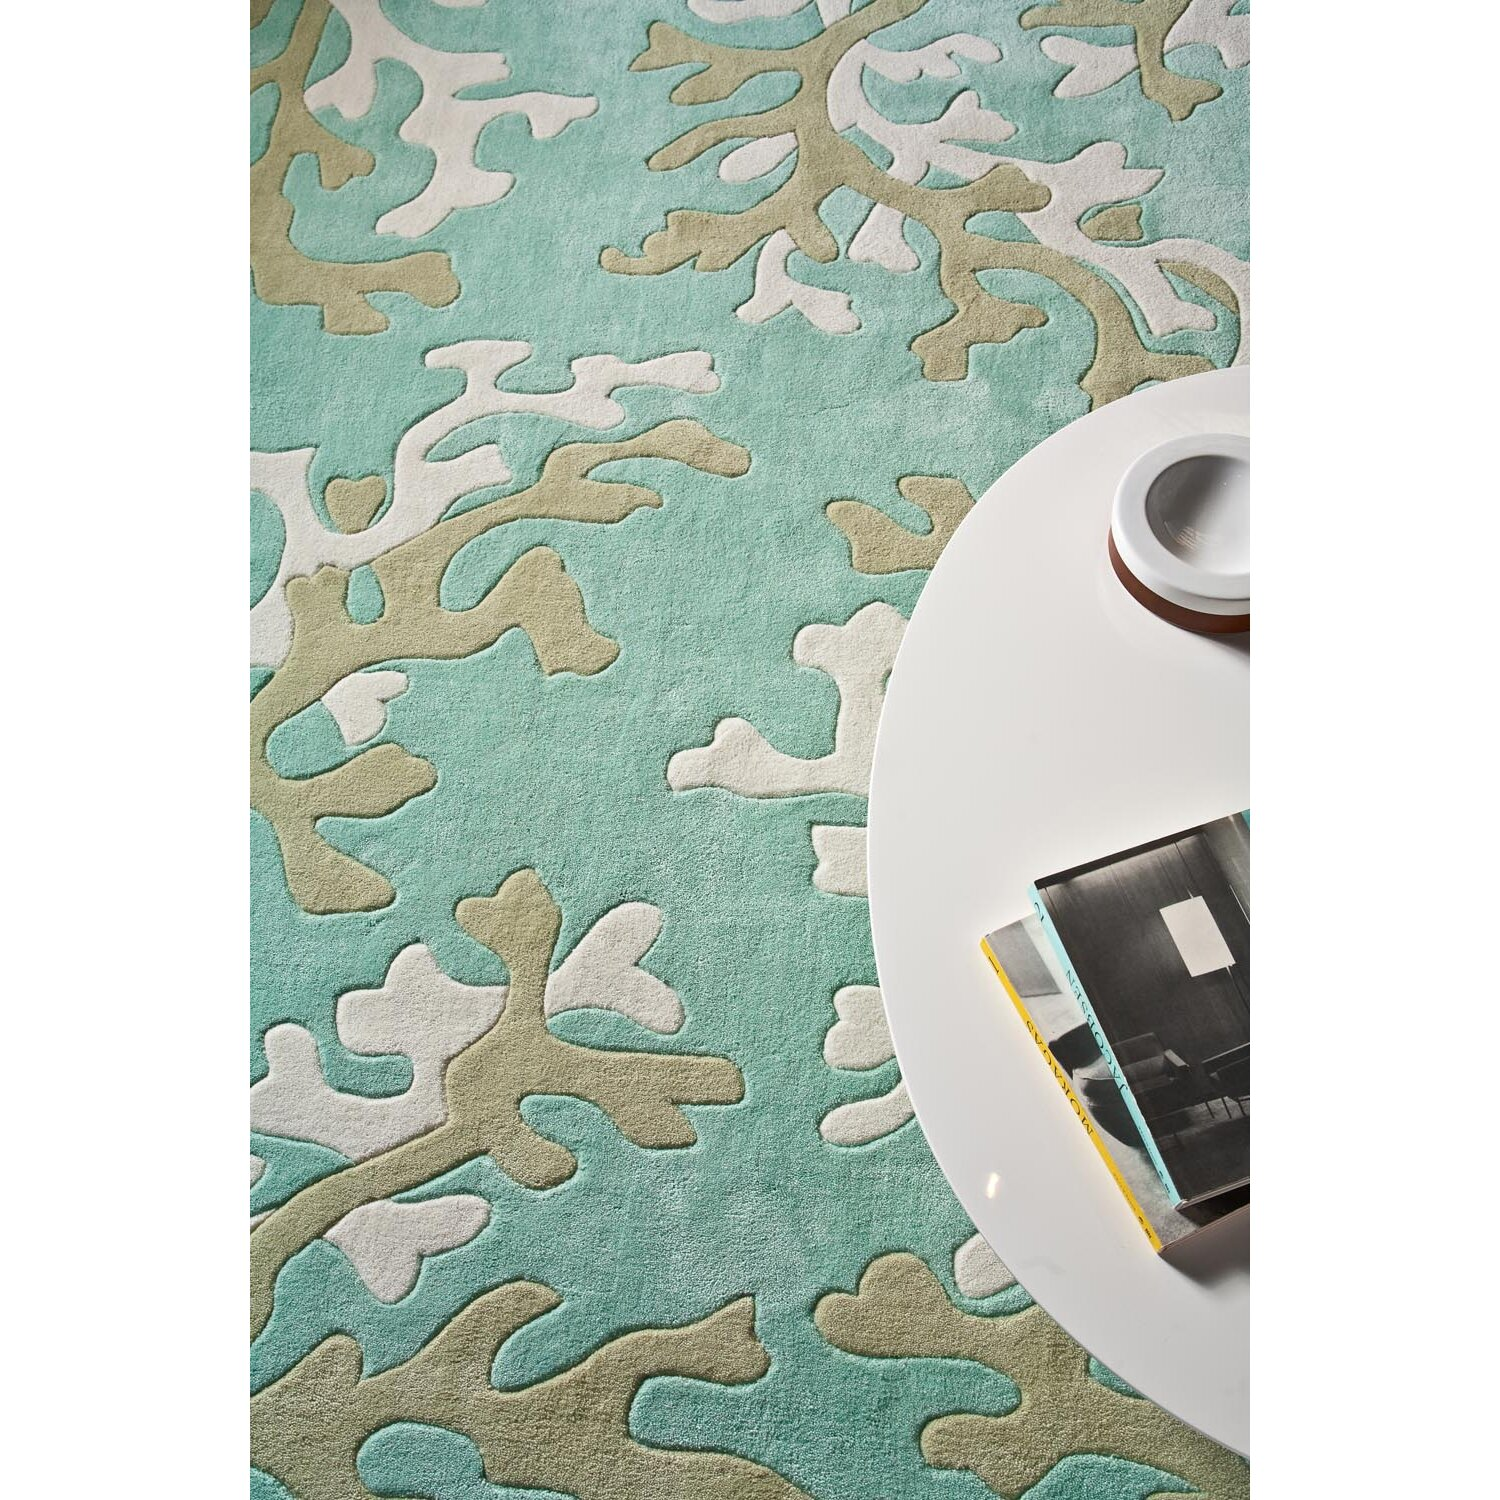 Coral And Turquoise Outdoor Rug: JaipurLiving Fusion Coral Fixation Turquoise Blue & White